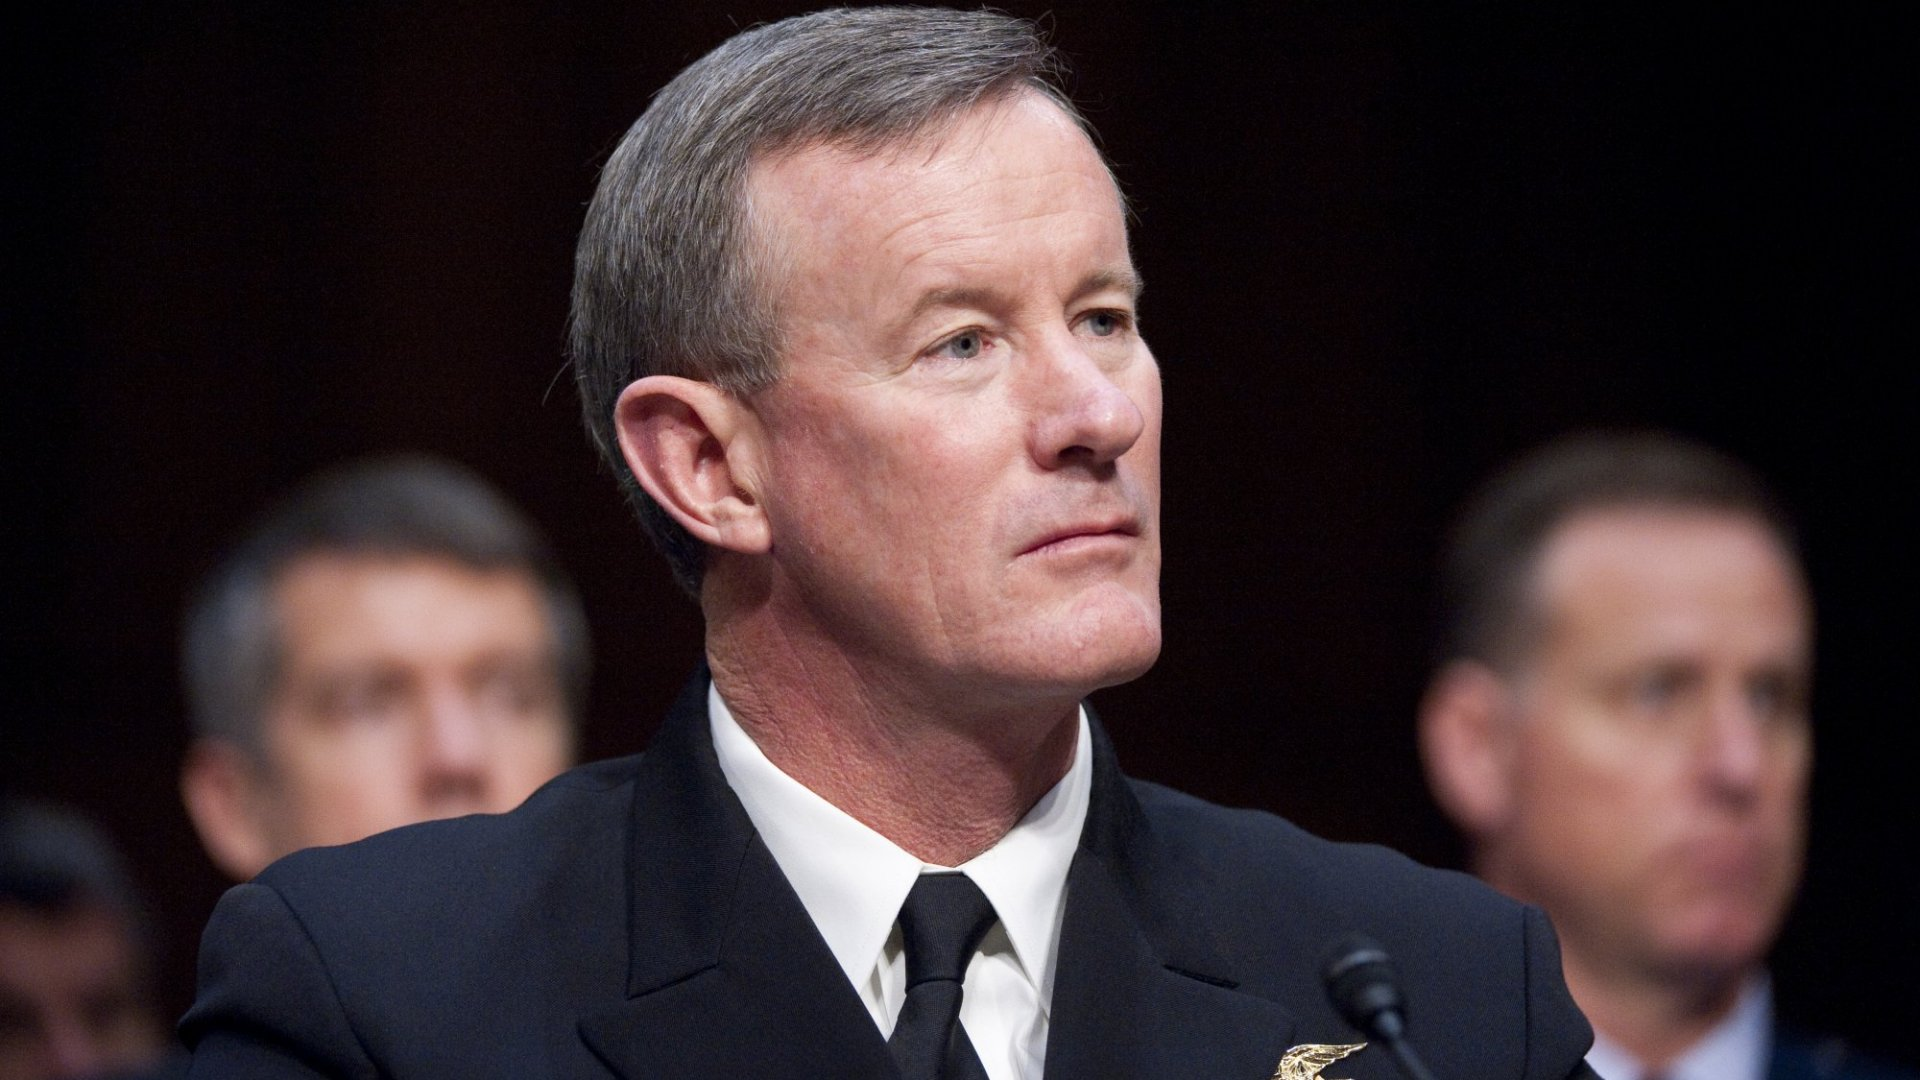 This Decorated Navy SEAL Commander Was Asked What He Thinks of 'Soft and Pampered' Millennials. His Blunt Answer Surprised Everyone